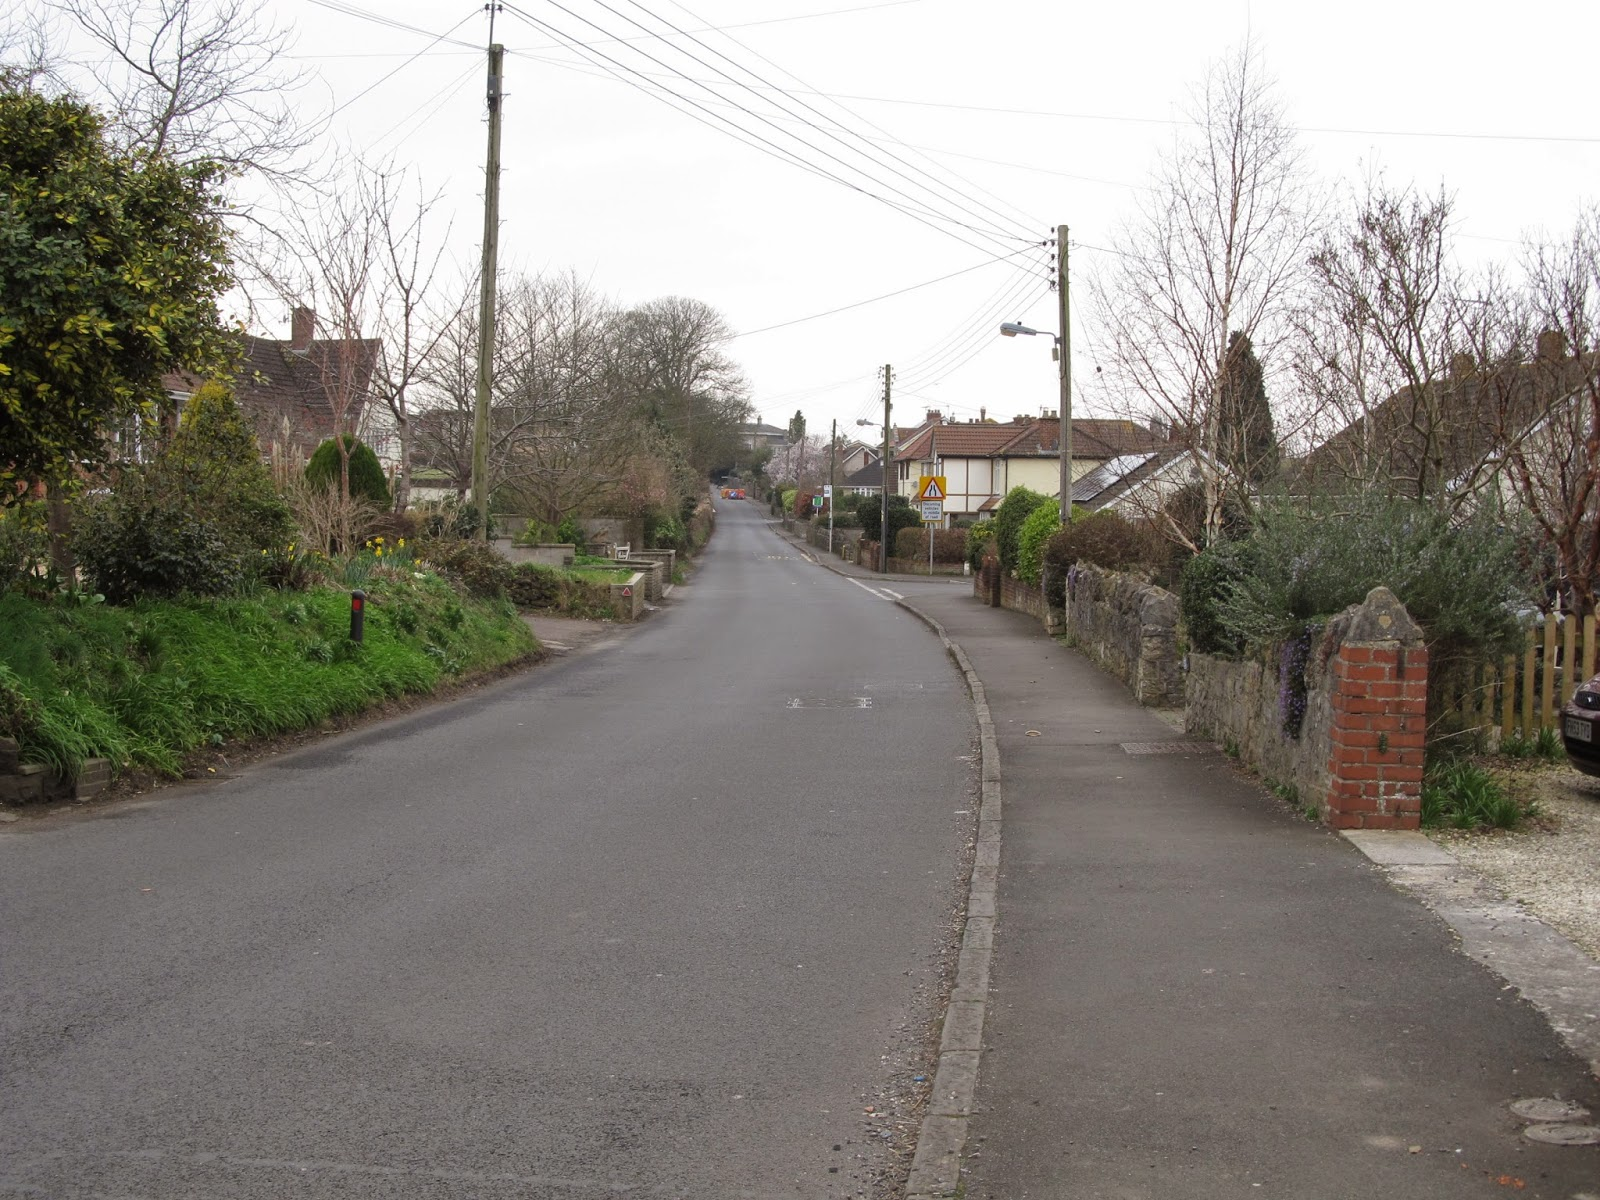 Image of road in Yatton